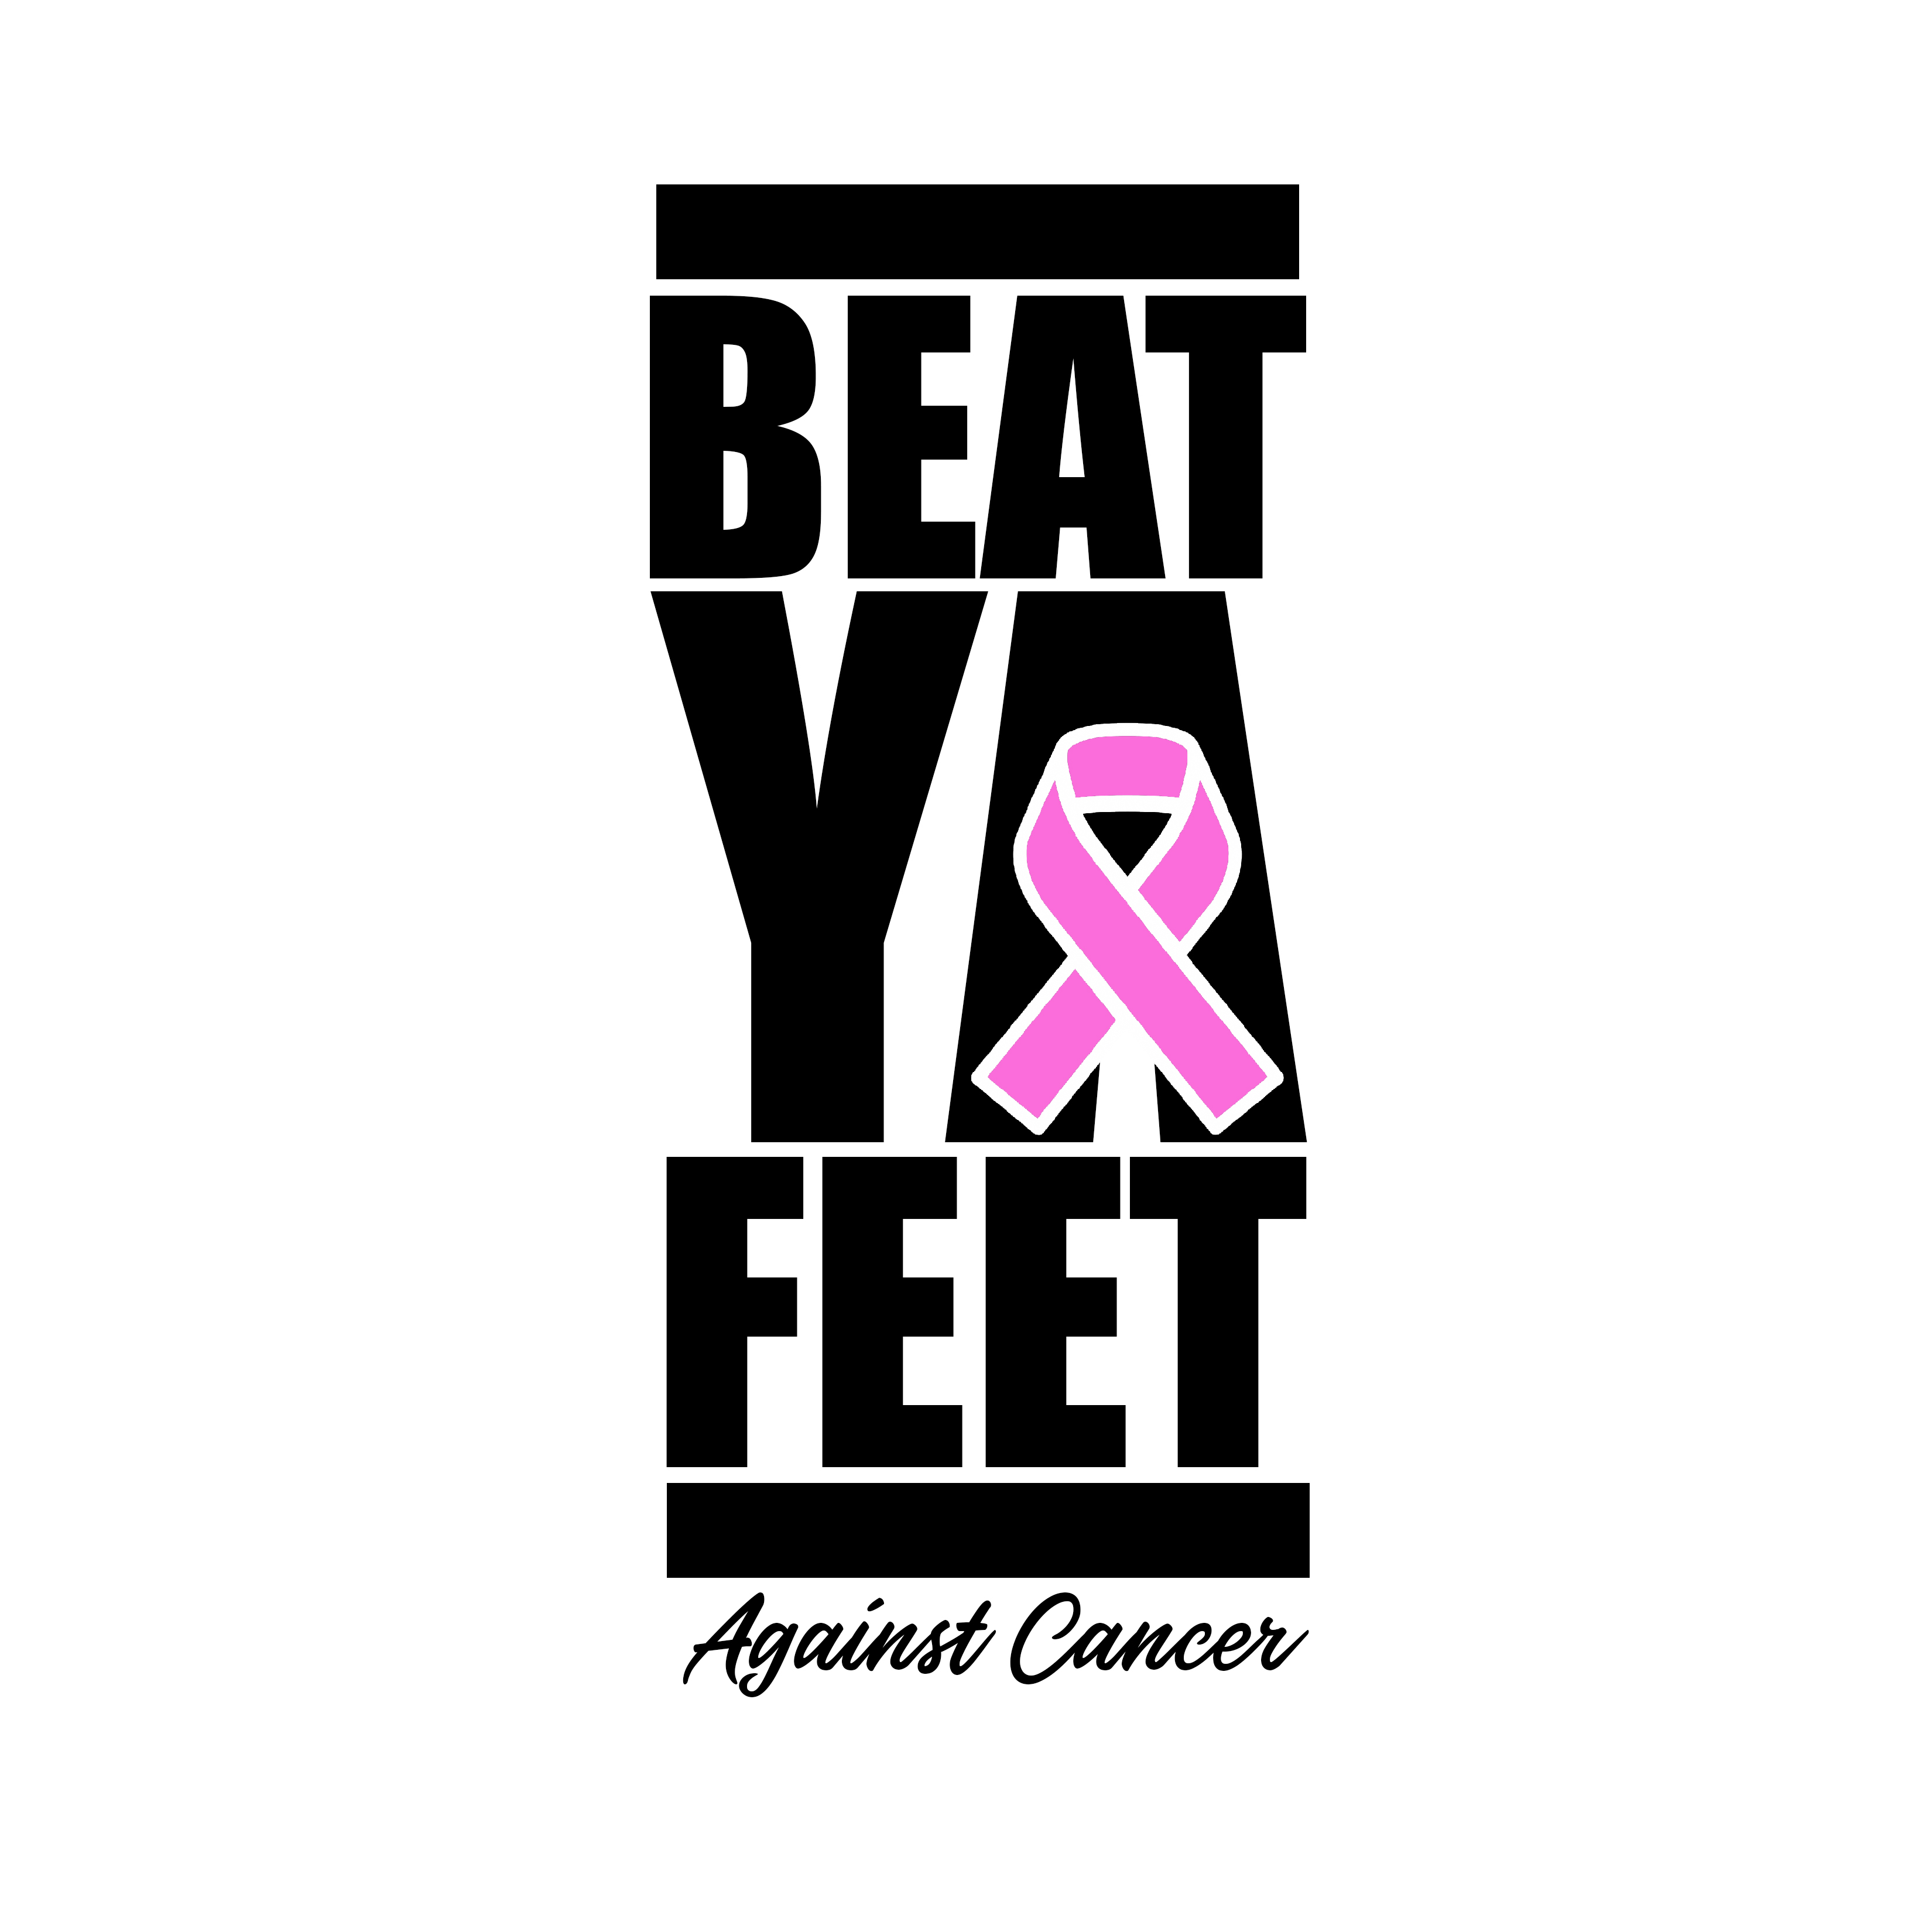 BYF VS BREAST CANCER 3